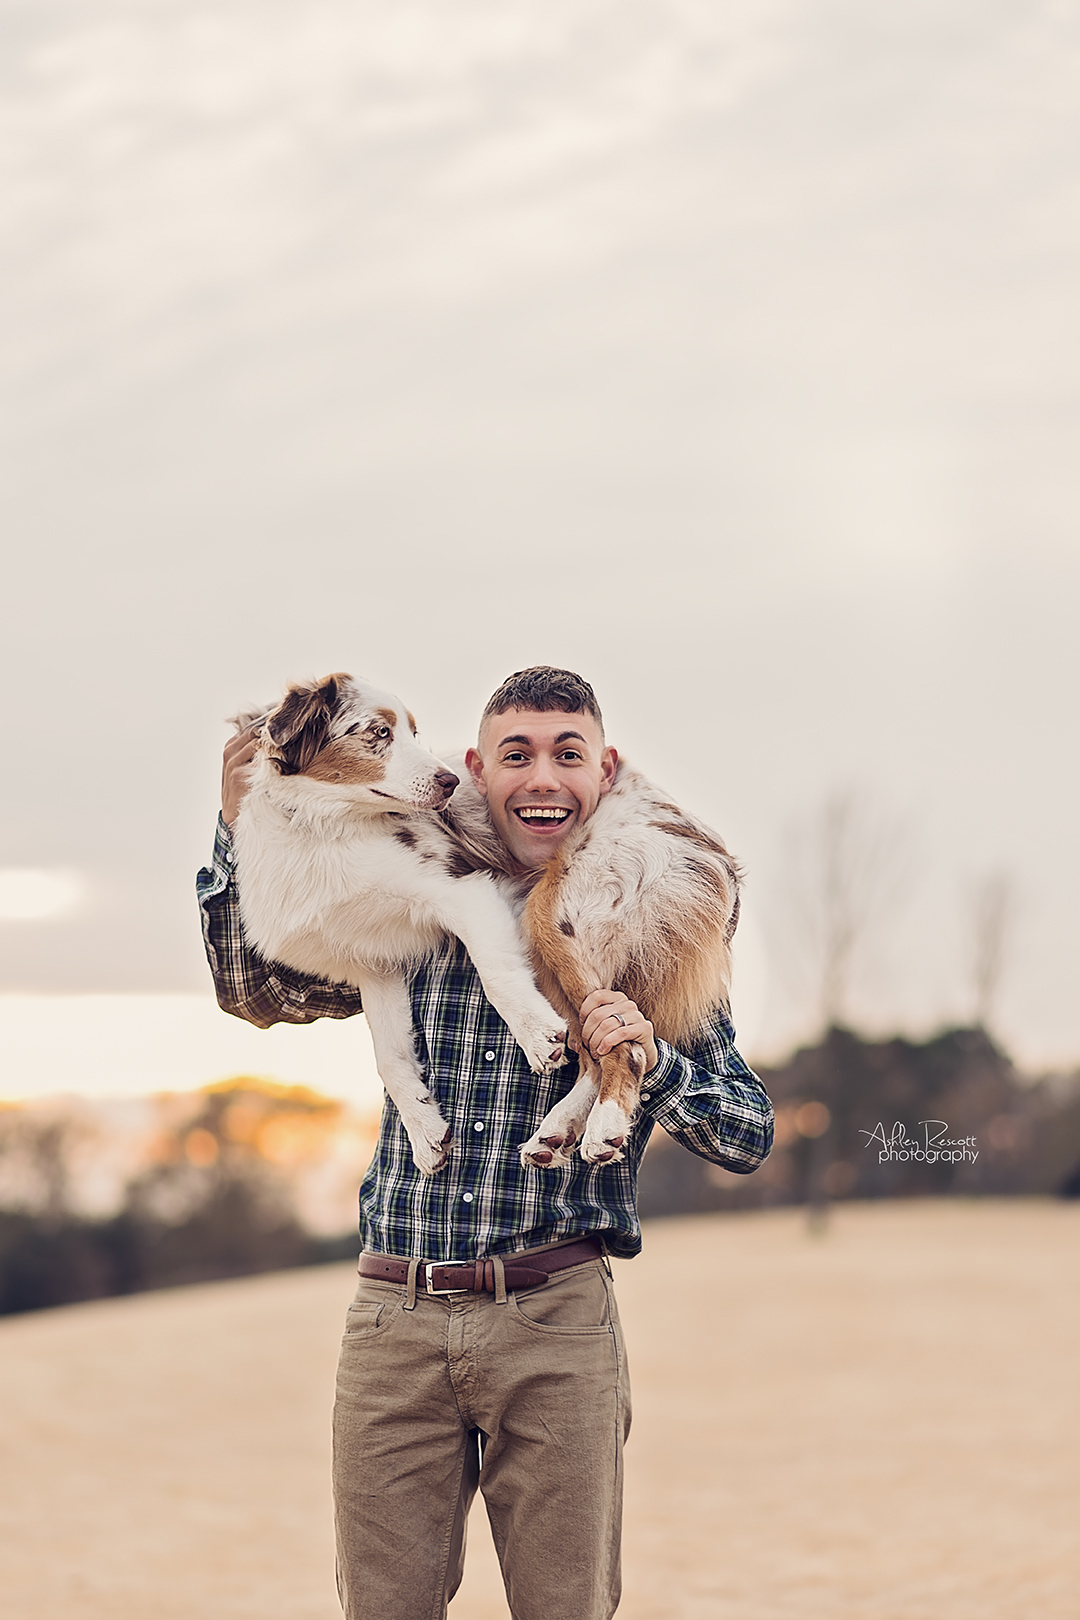 man holding dog on shoulders in field at sunset